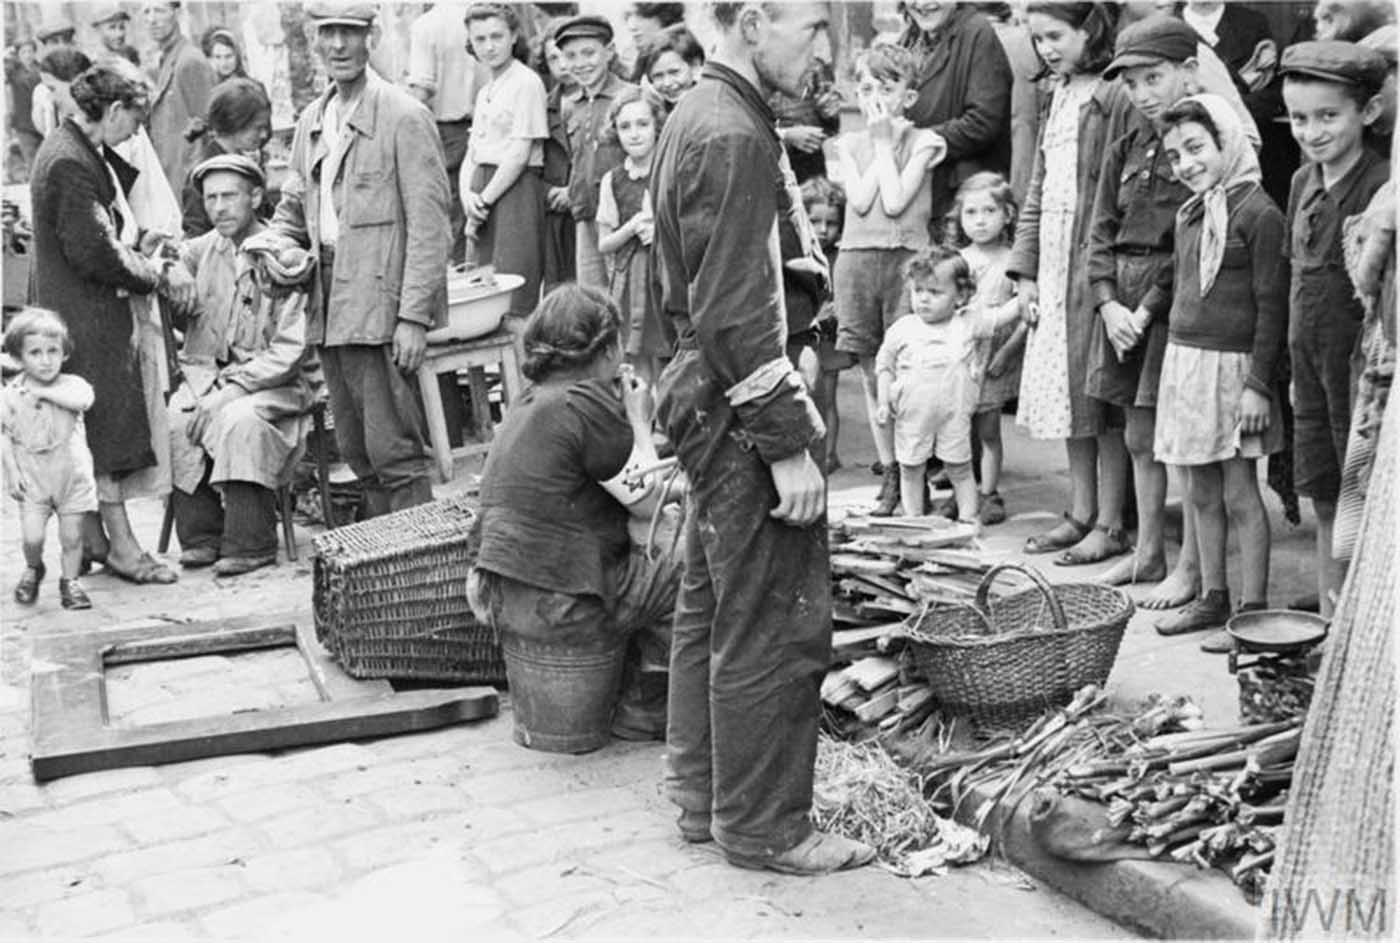 Jewish residents of the ghetto shopping in a vegetable street market.